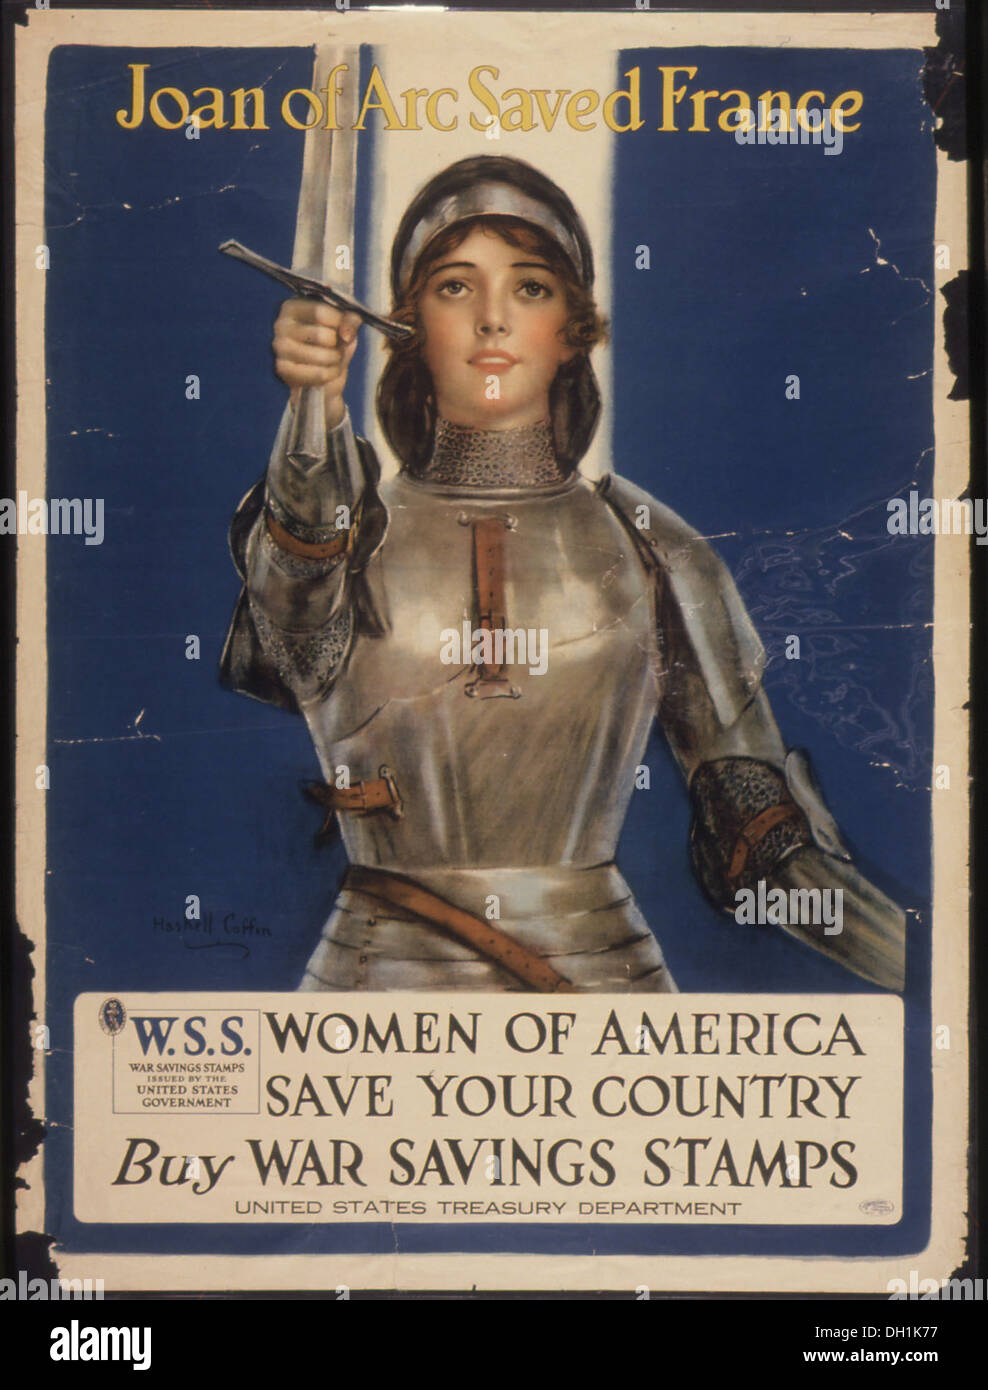 Joan of Arc Saved France. Women of America. Save Your Country. Buy War Savings Stamps. W.S.S. War Saving Stamps... 512620 - Stock Image